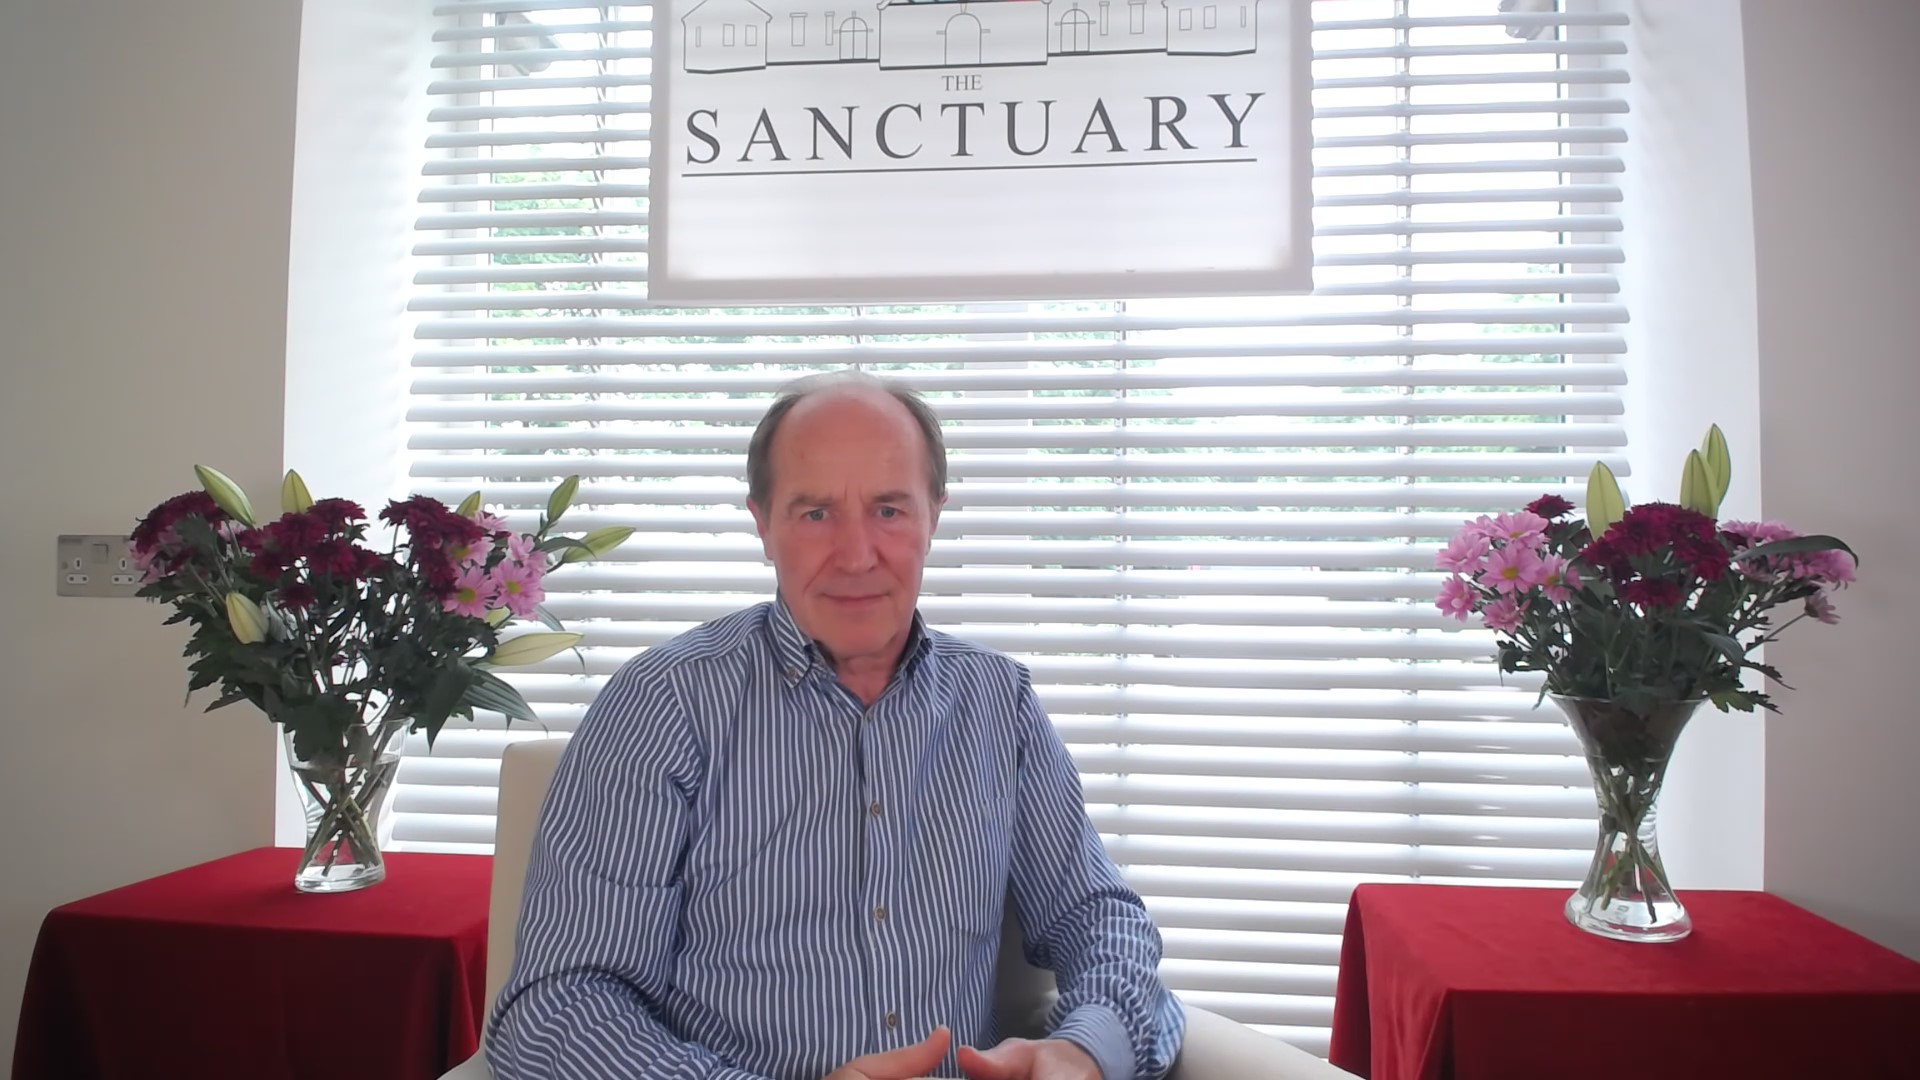 EP161 Tony Clarkson 11 Visits to John of God to Create Sanctuary of Healing on Exploring Possibilities